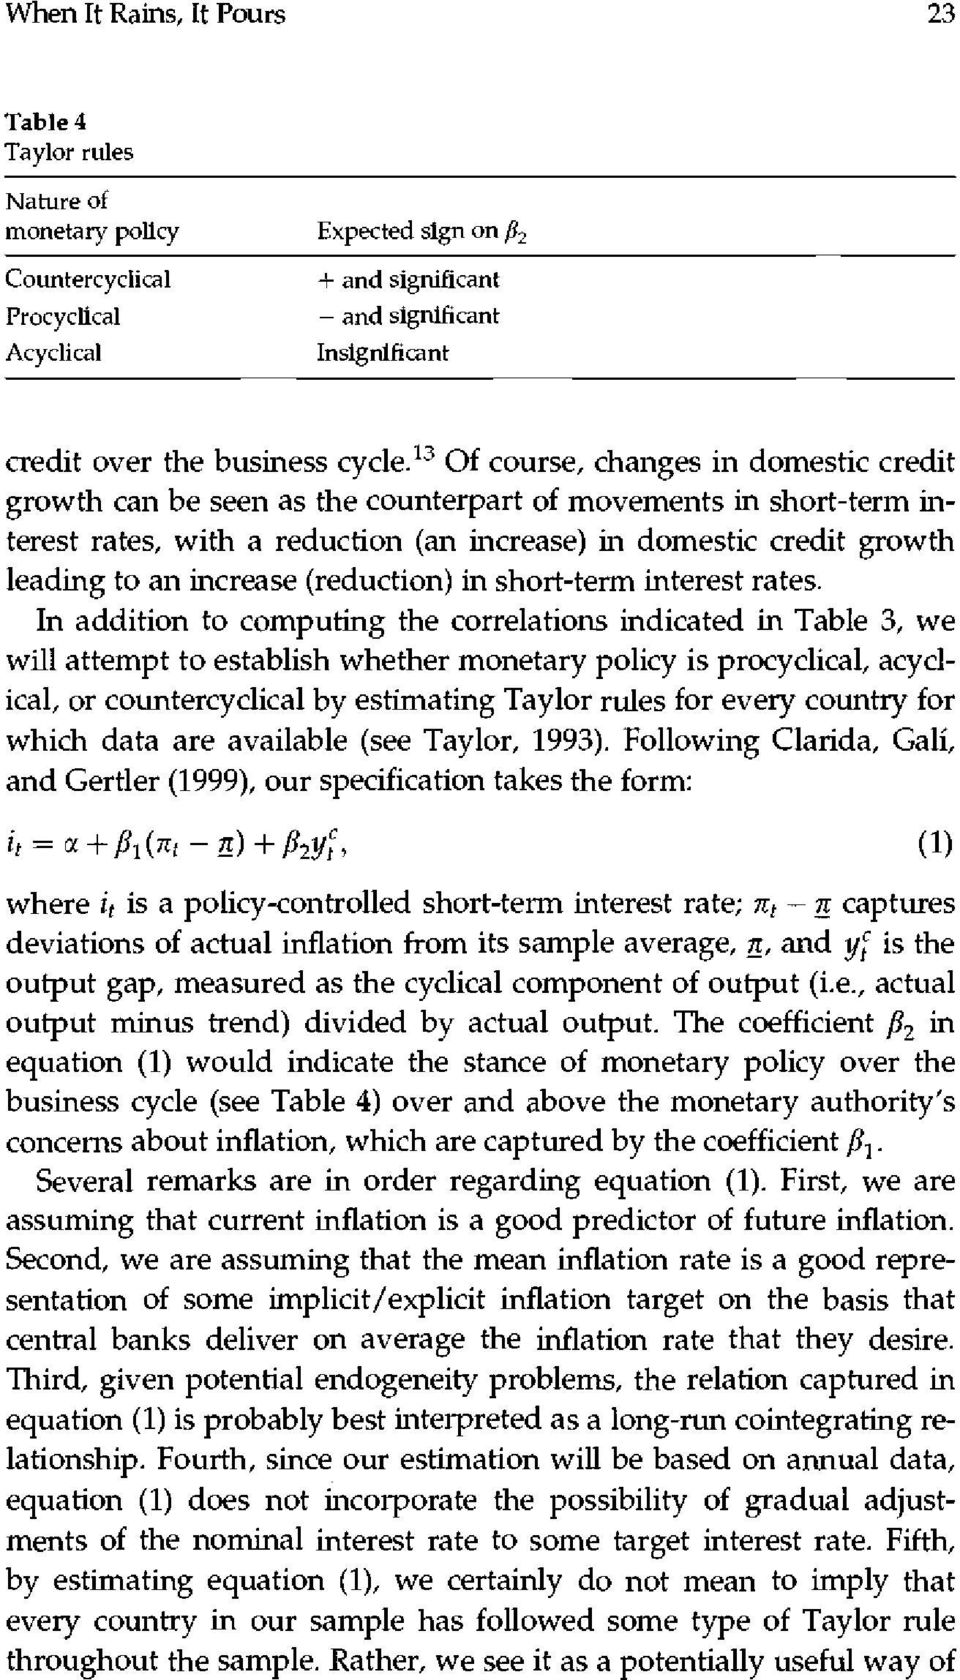 13 Of course, changes in domestic credit growth can be seen as the counterpart of movements in short-term interest rates, with a reduction (an increase) in domestic credit growth leading to an